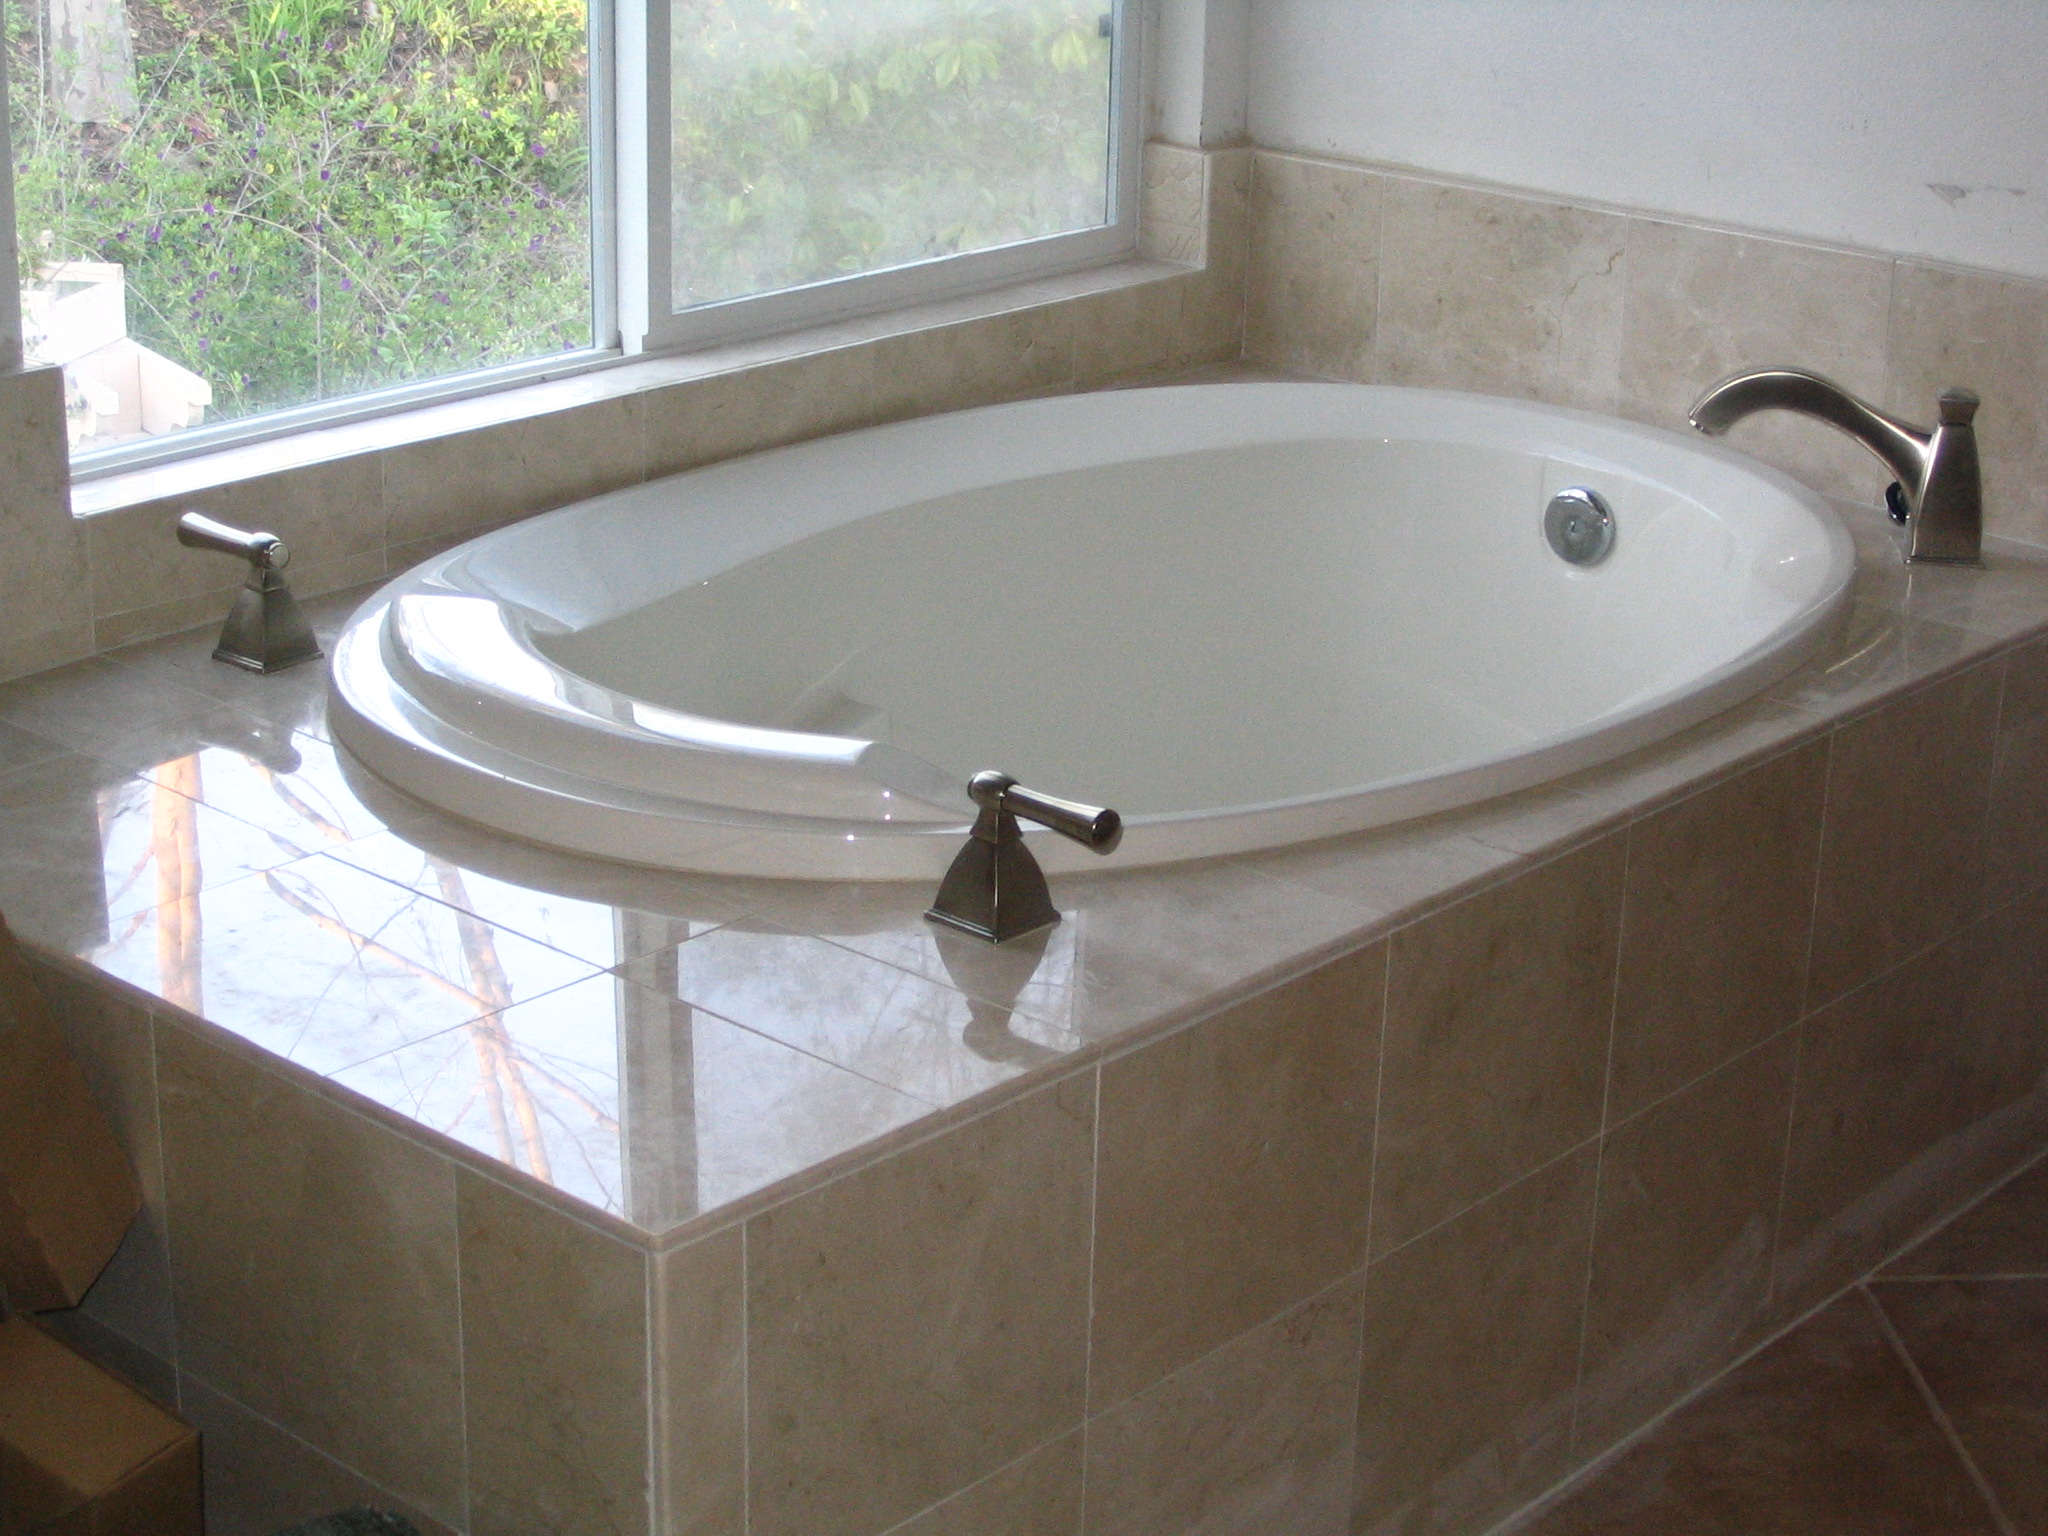 Http Www Theplumbingdoctoronline Com Tub Shower Photo Gallery Html